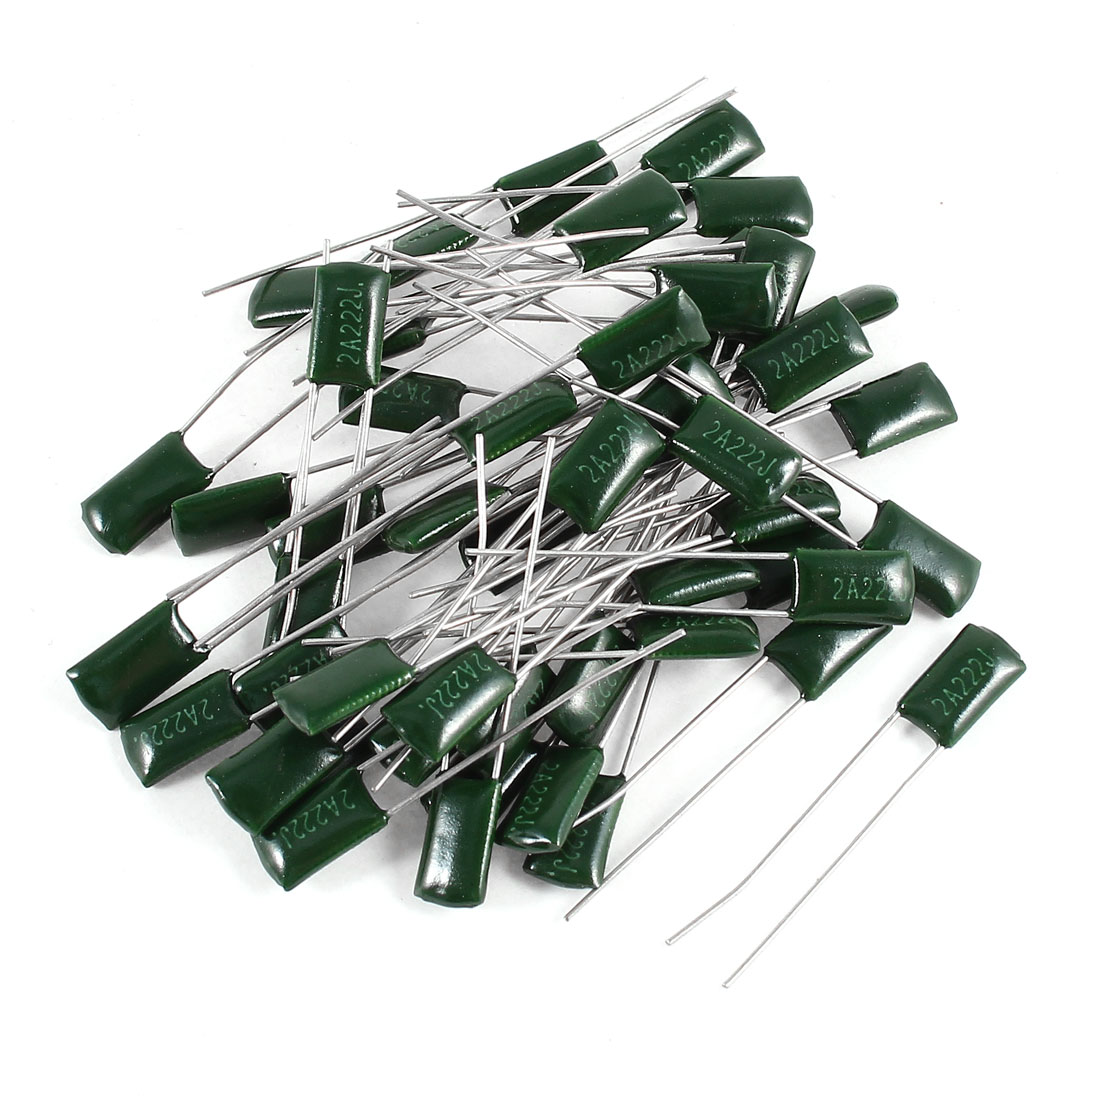 50 Pcs Radial Leads Polyester Film Cap Capacitance Capacitors Green 2A222J 100V 2.2nF 5%